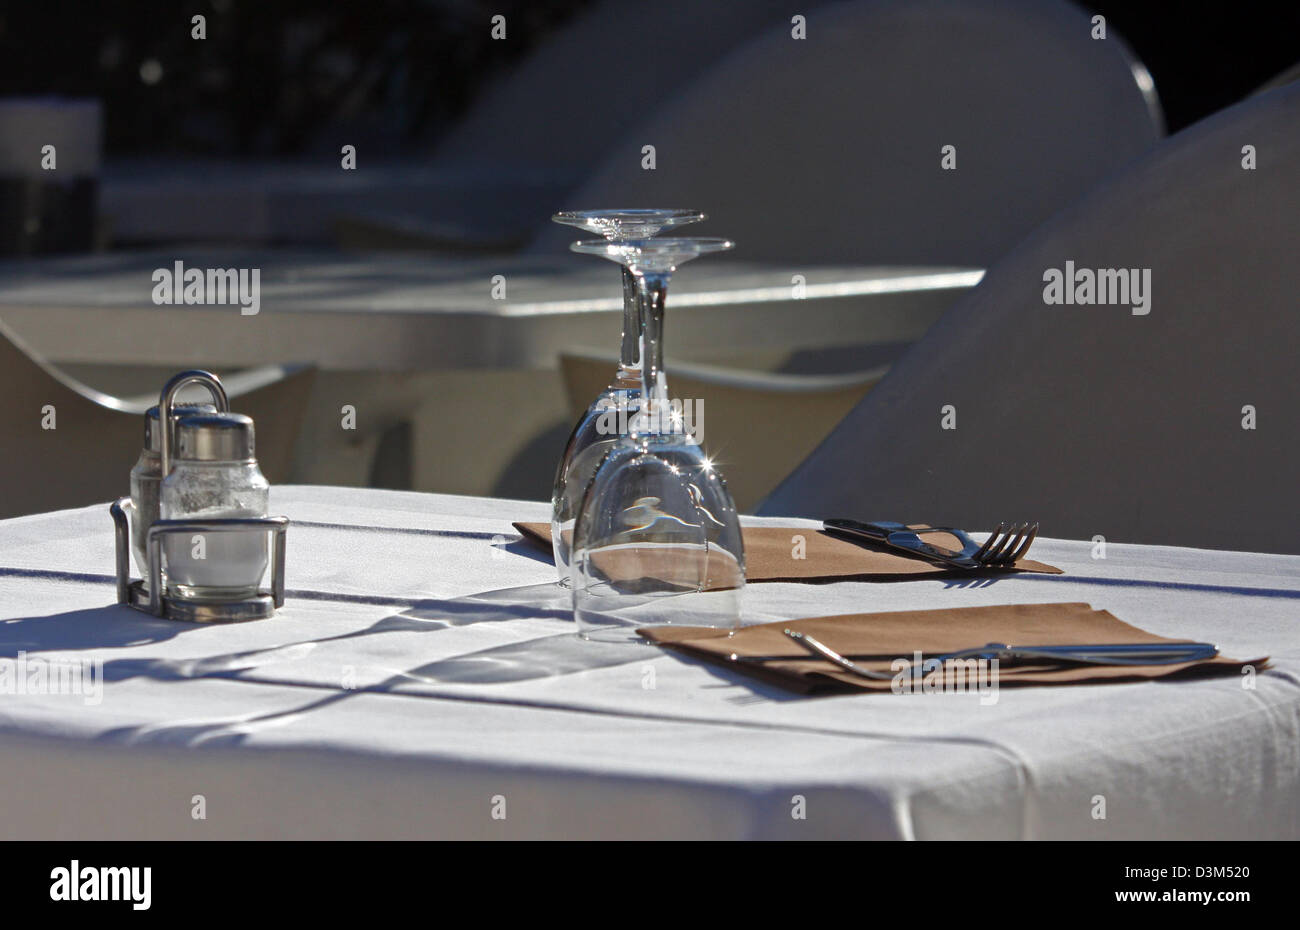 Set table at a restaurant, Italy, Lombardy, Lake Como - Stock Image